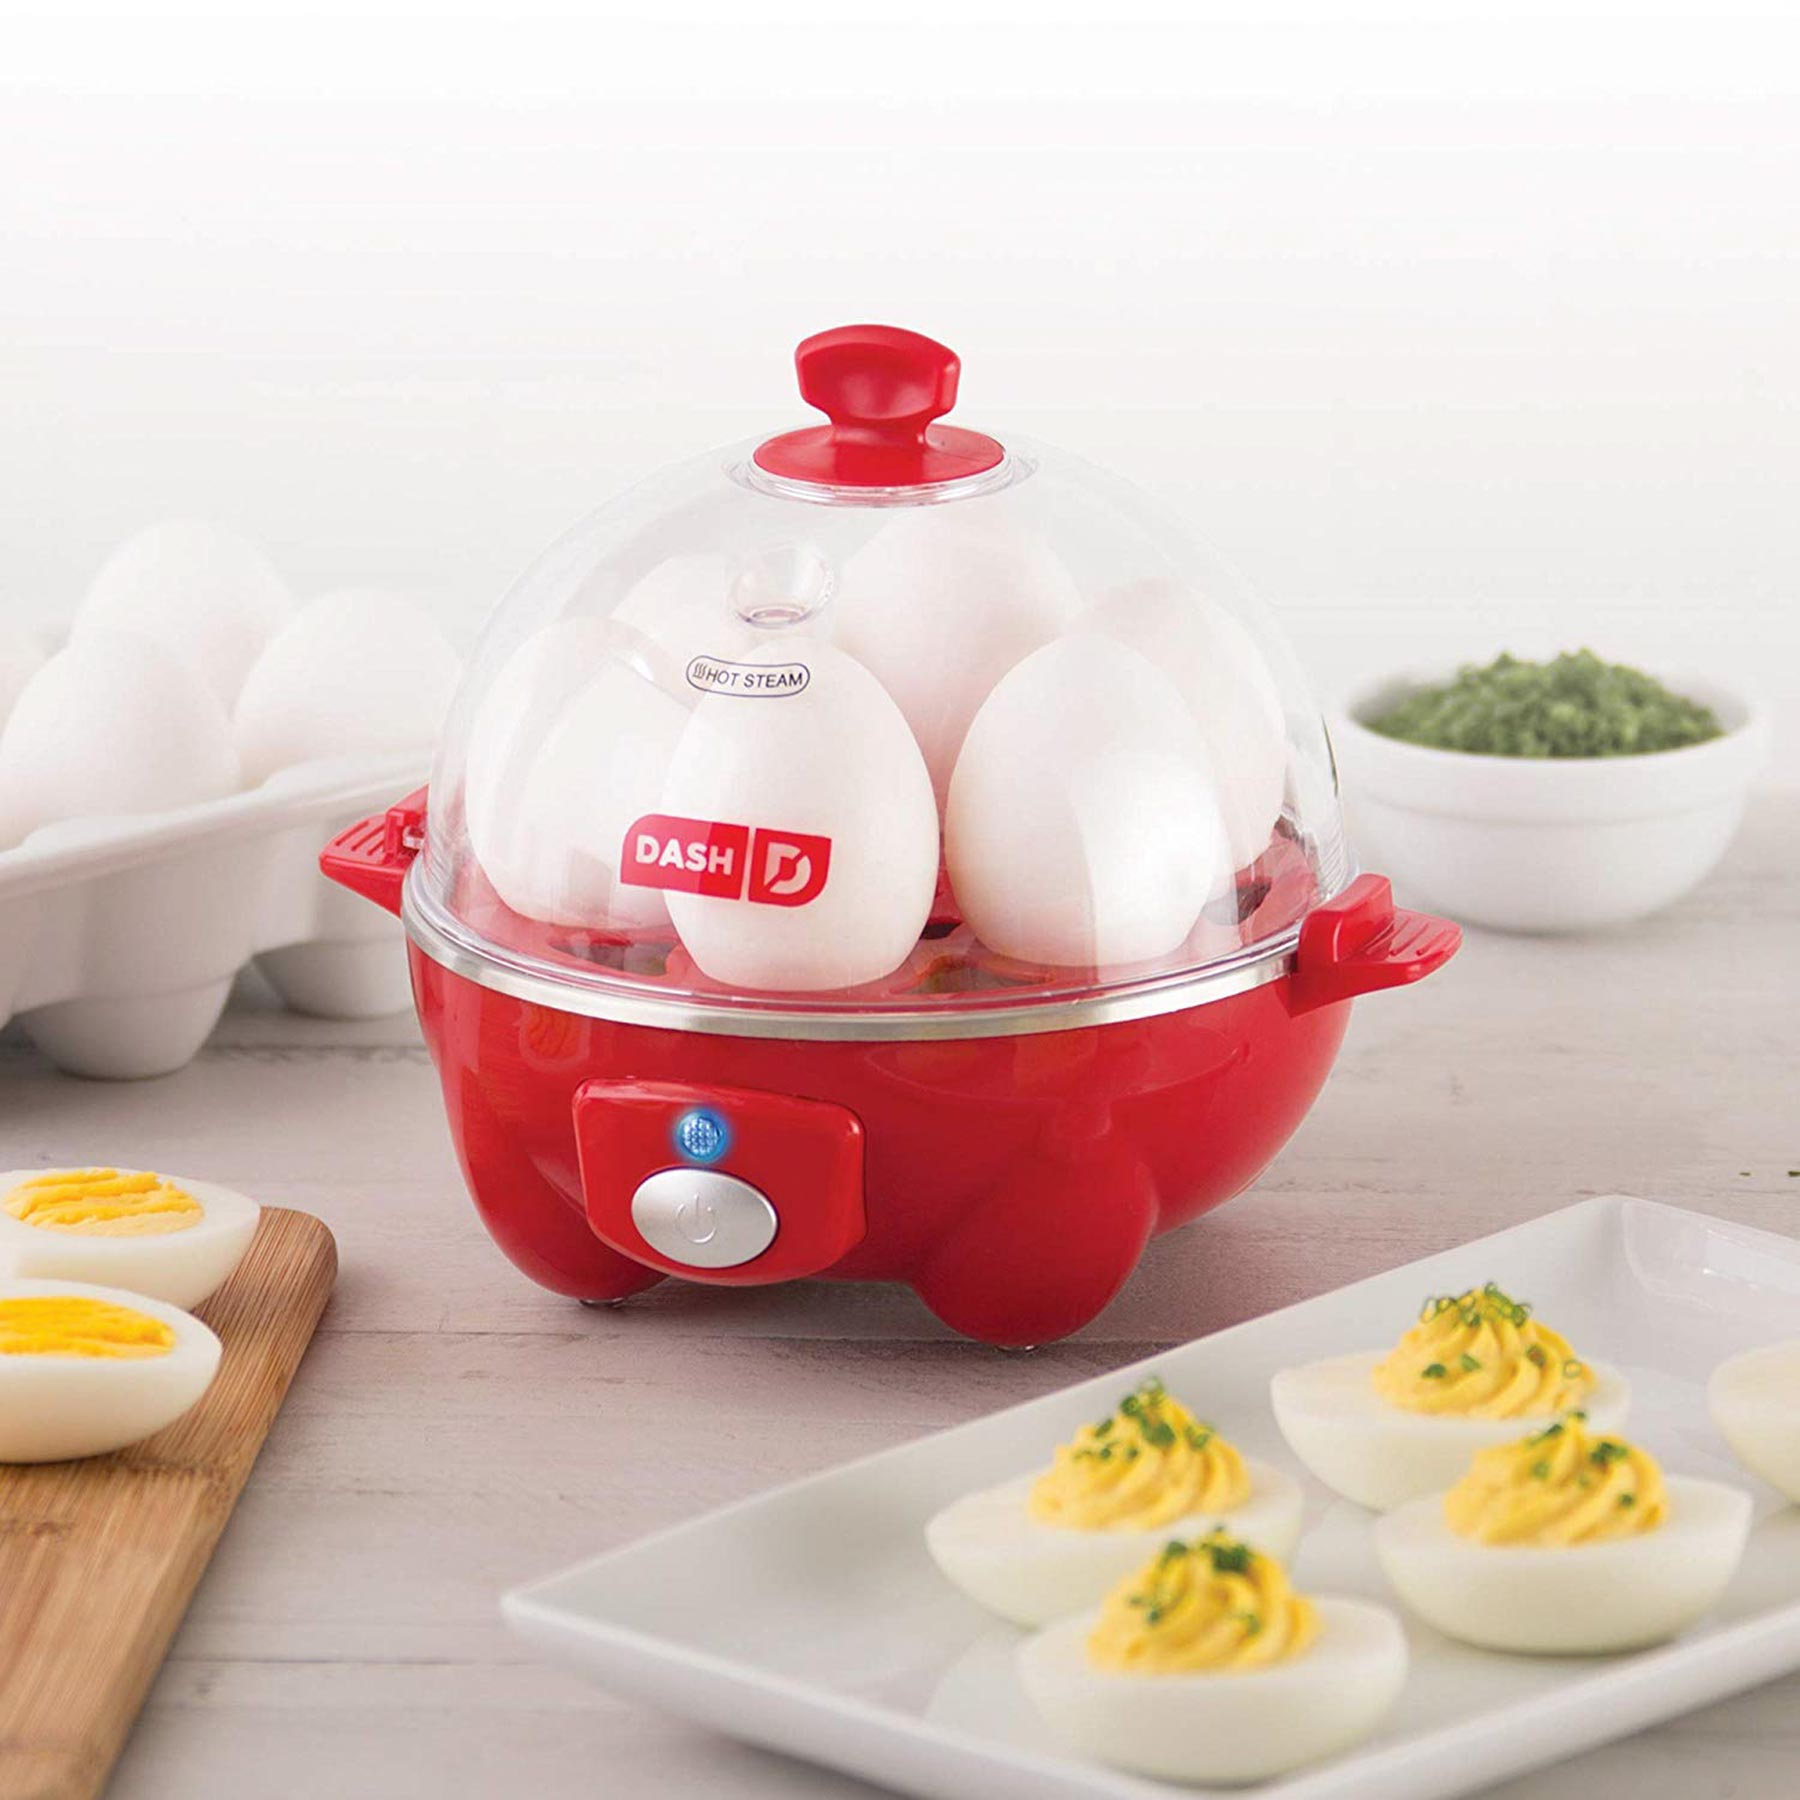 Over 380,000 People Bought This Under-$20 Egg Cooker from Amazon Last Year